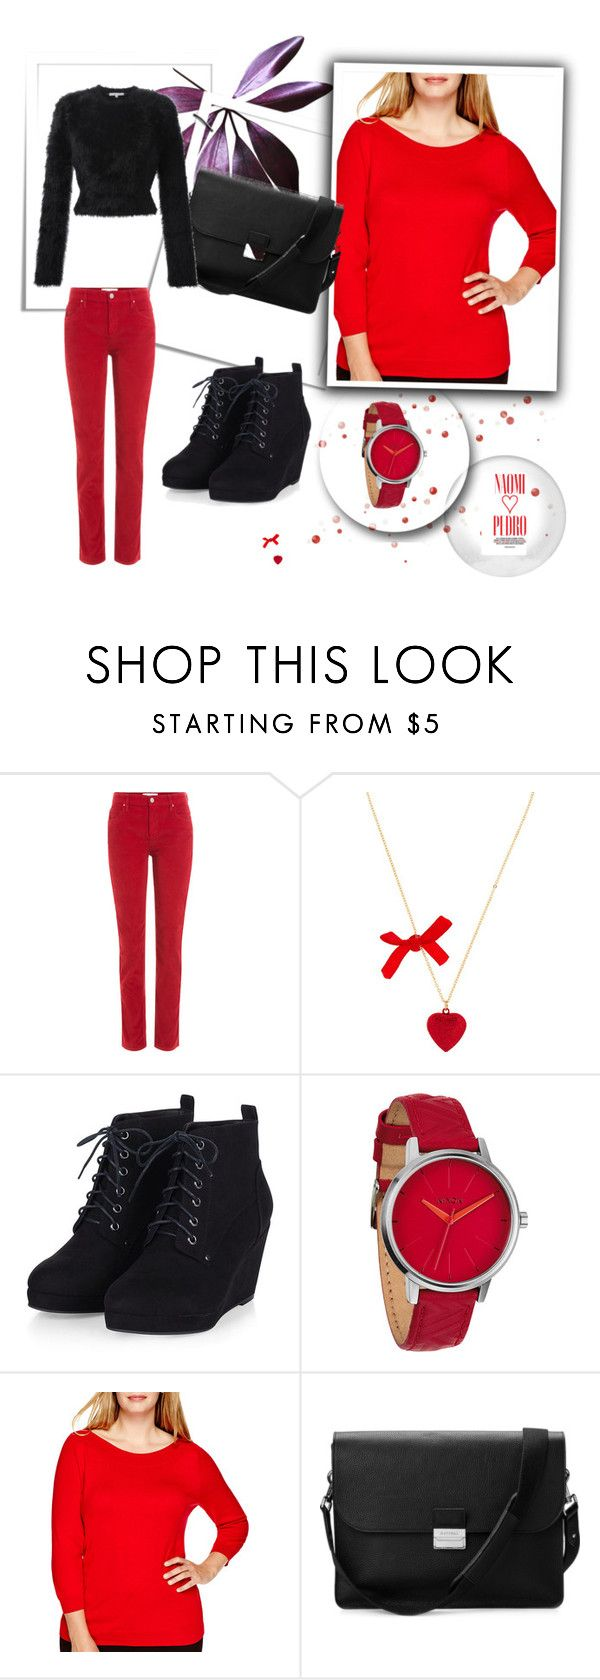 """FOR EVERY DAY"" by ratceatanasova ❤ liked on Polyvore featuring Étoile Isabel Marant, Nixon, Naomi Campbell, Worthington, Aspinal of London, Carven and plus size clothing"